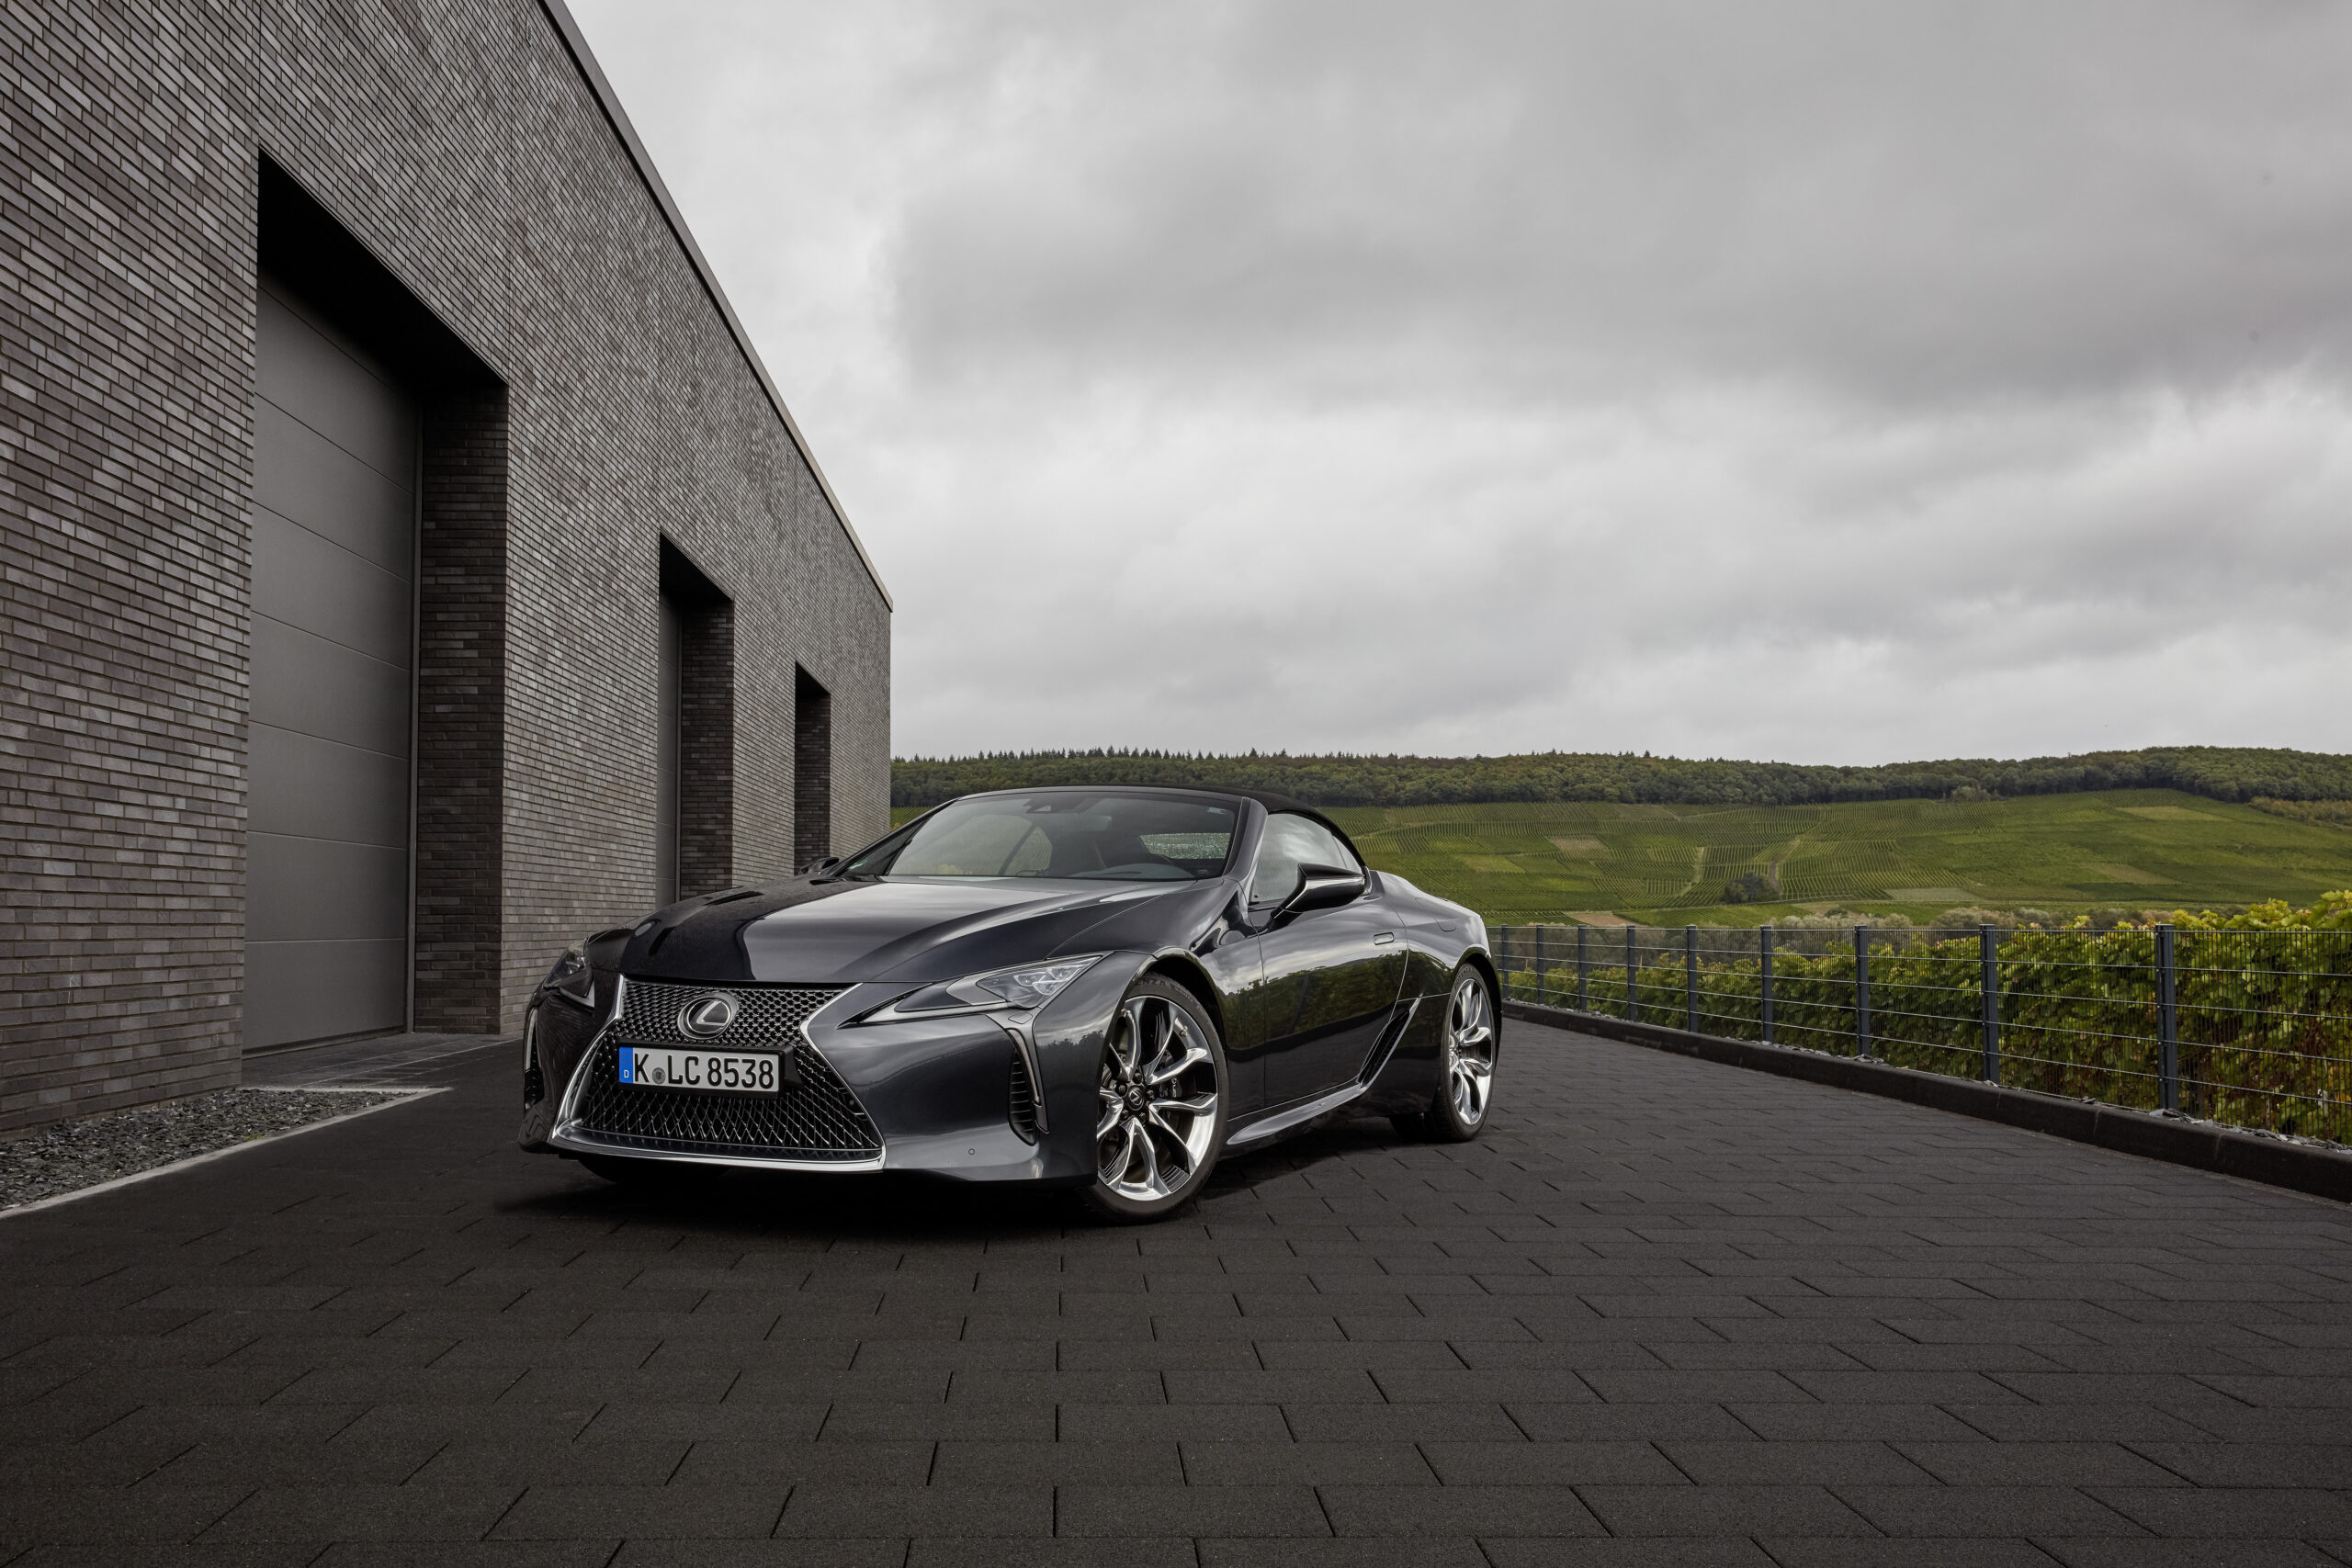 2021 Lexus LC 500 Cabriolet Coupe Facelifting 627 scaled 2021 Lexus LC 500 Cabriolet und Coupe mit Facelifting!